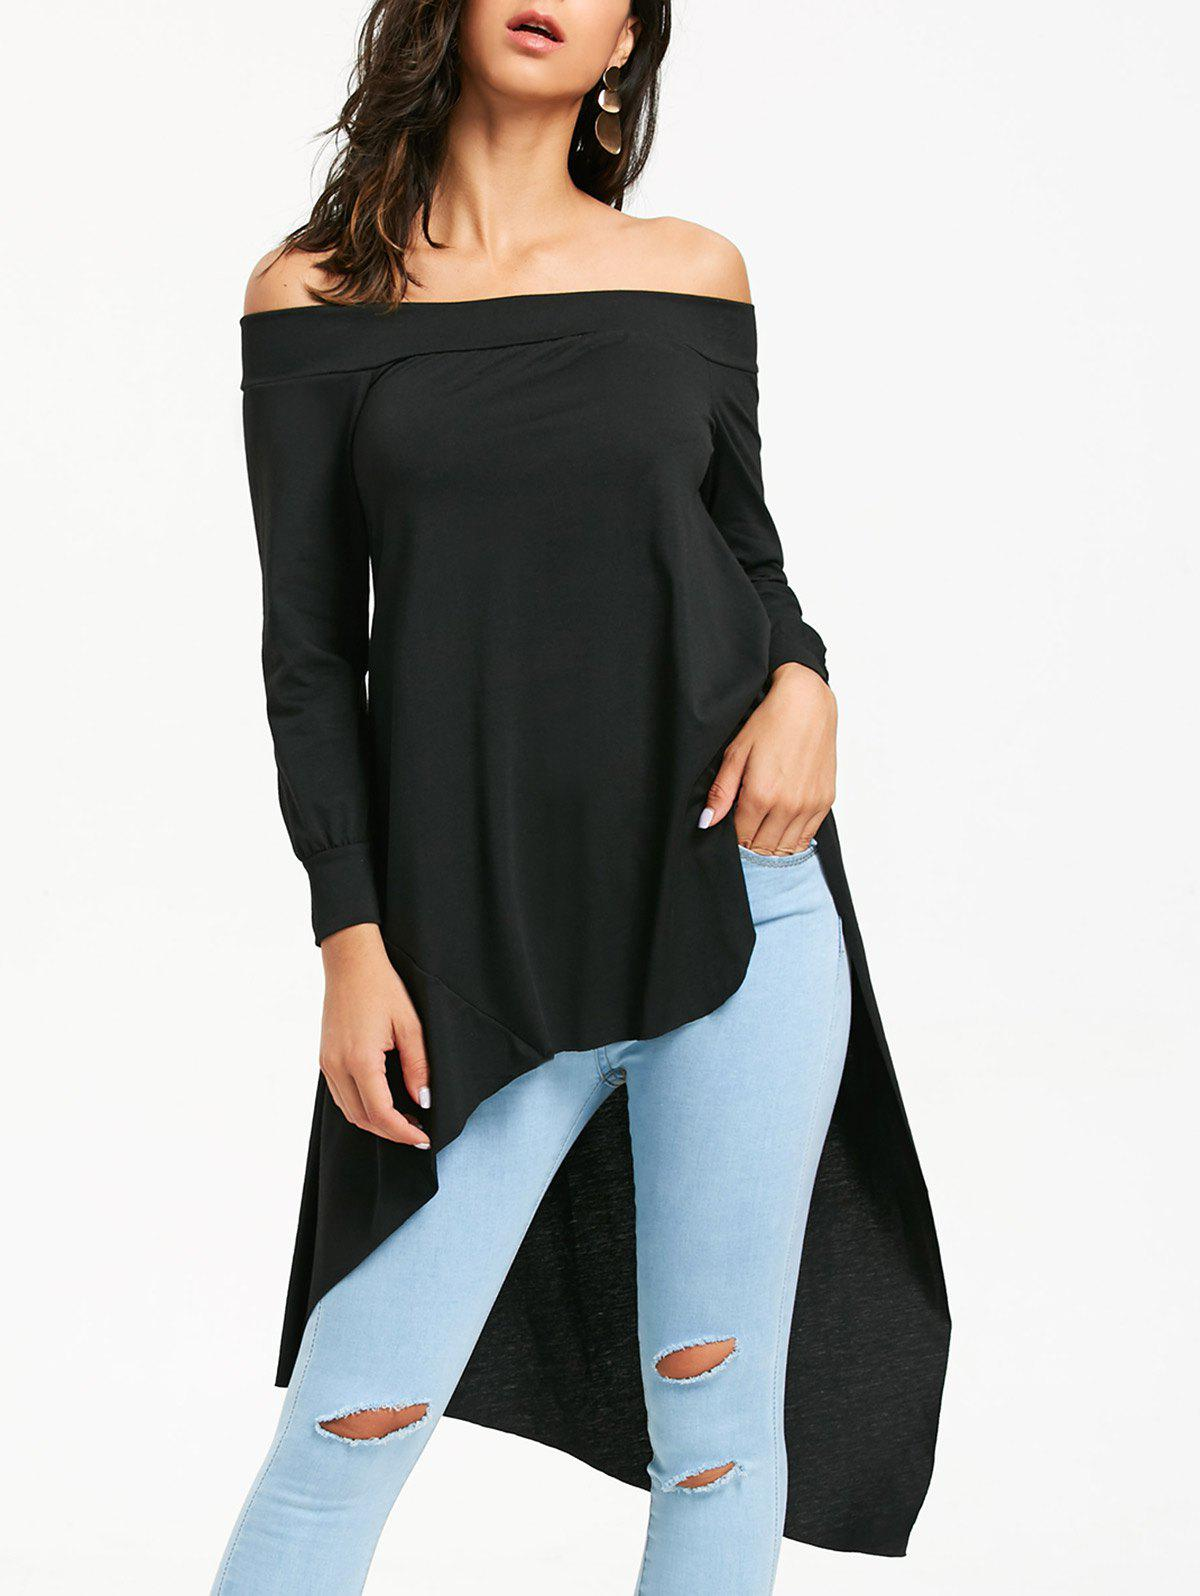 Off Shoulder Long Sleeve High Low T-shirtWOMEN<br><br>Size: XL; Color: BLACK; Material: Polyester; Shirt Length: Regular; Sleeve Length: Full; Collar: Off The Shoulder; Style: Fashion; Pattern Type: Solid Color; Season: Fall,Spring,Winter; Weight: 0.3200kg; Package Contents: 1 x T-shirt;